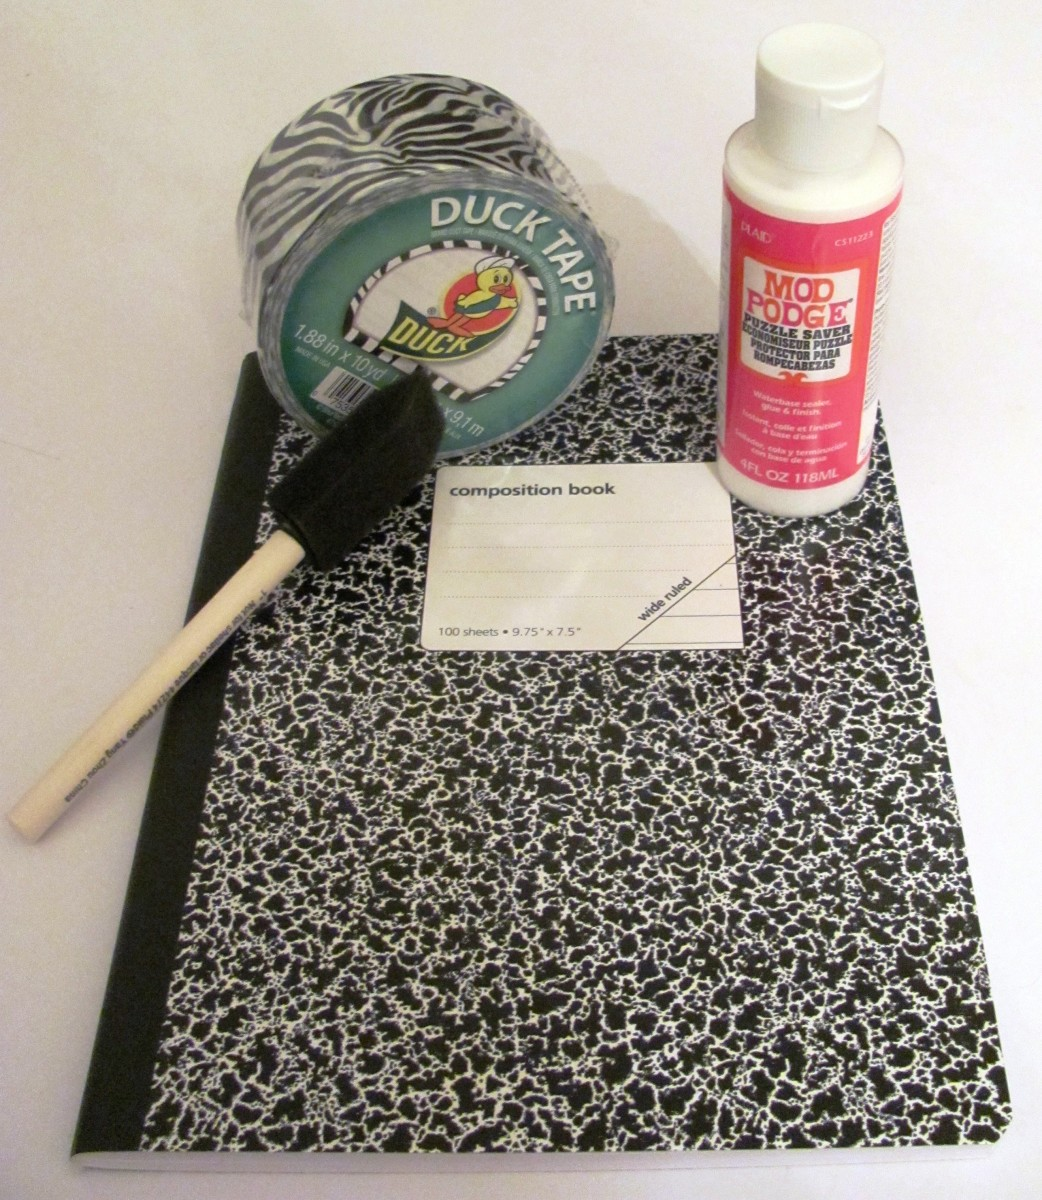 Anyone can transform a plain composition book using photos and a few basic craft tools,